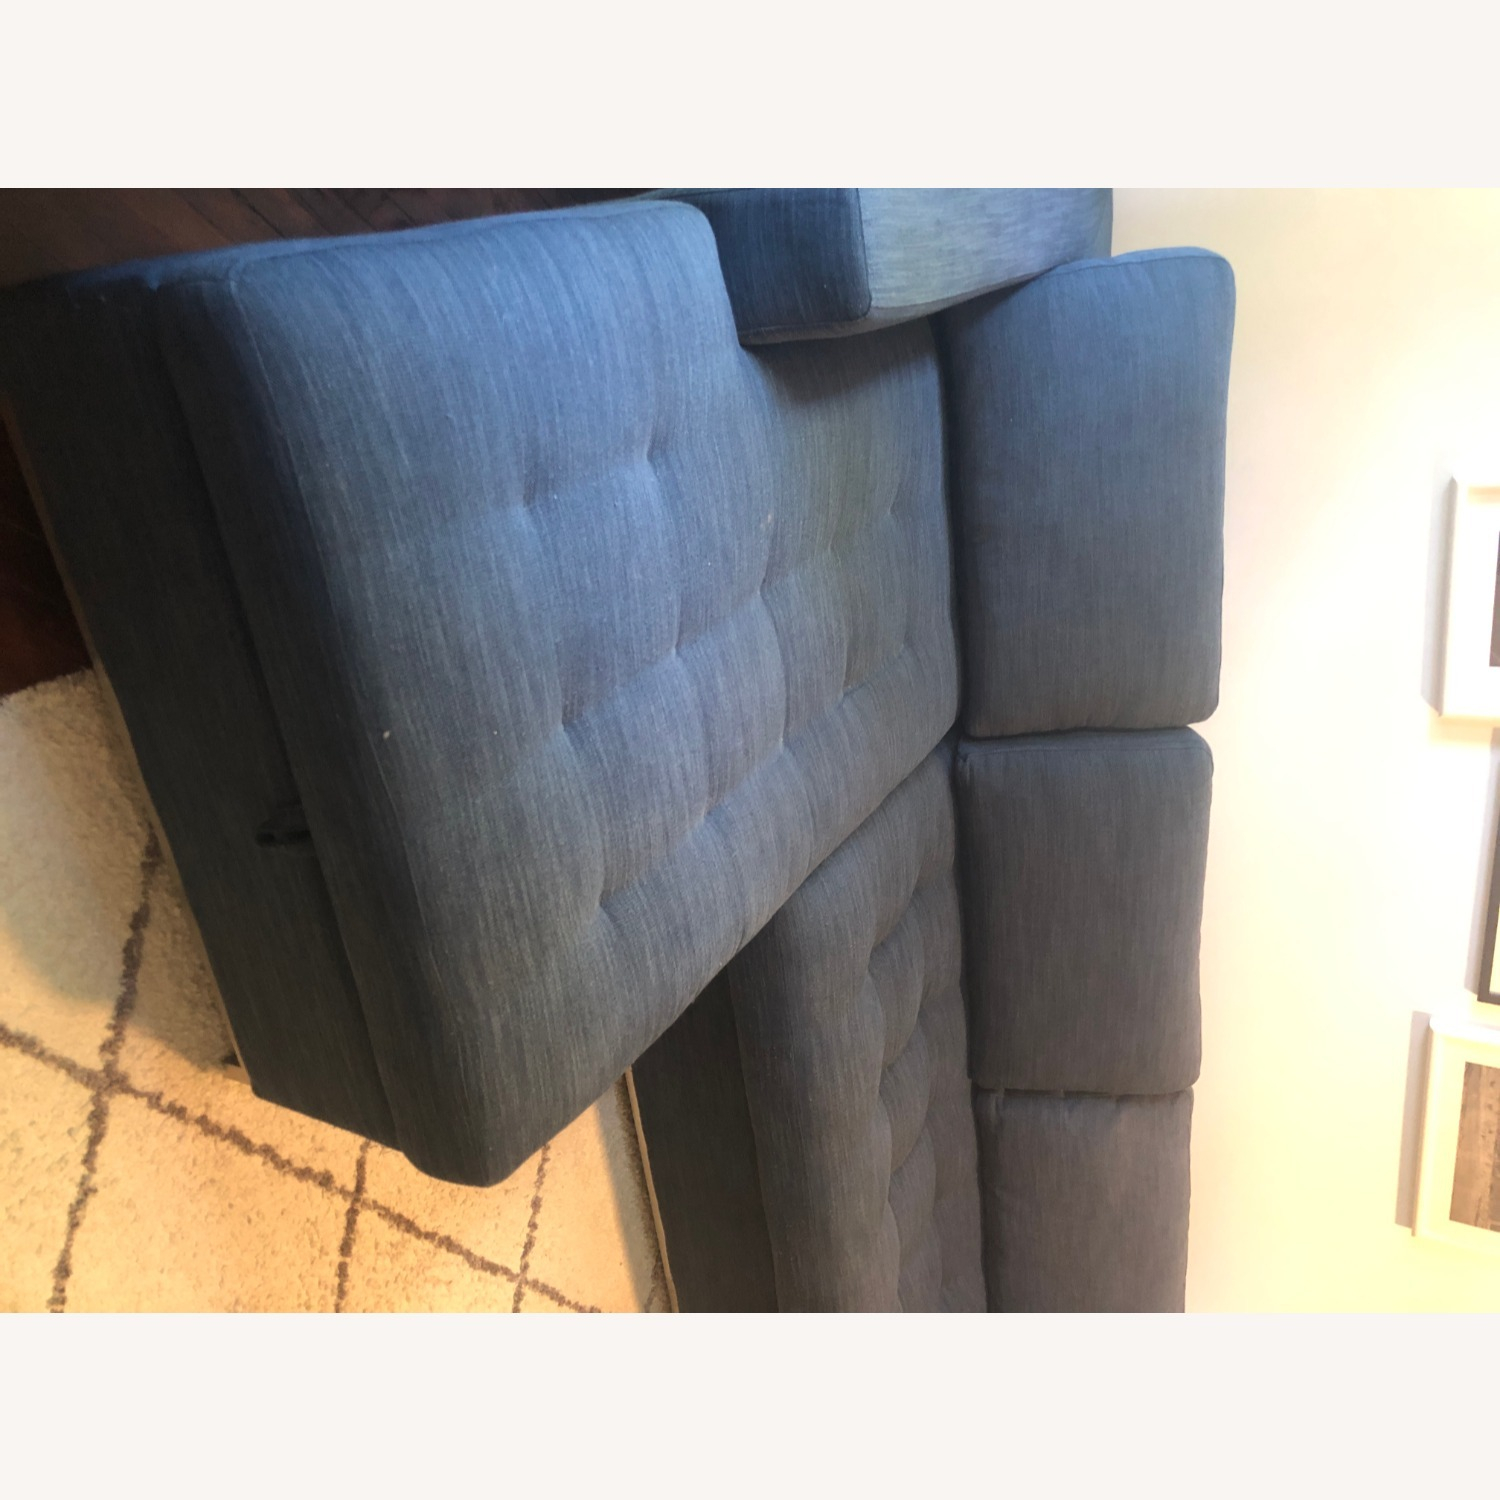 Article Soma Midnight Blue Sleeper Sectional Sofa - image-11